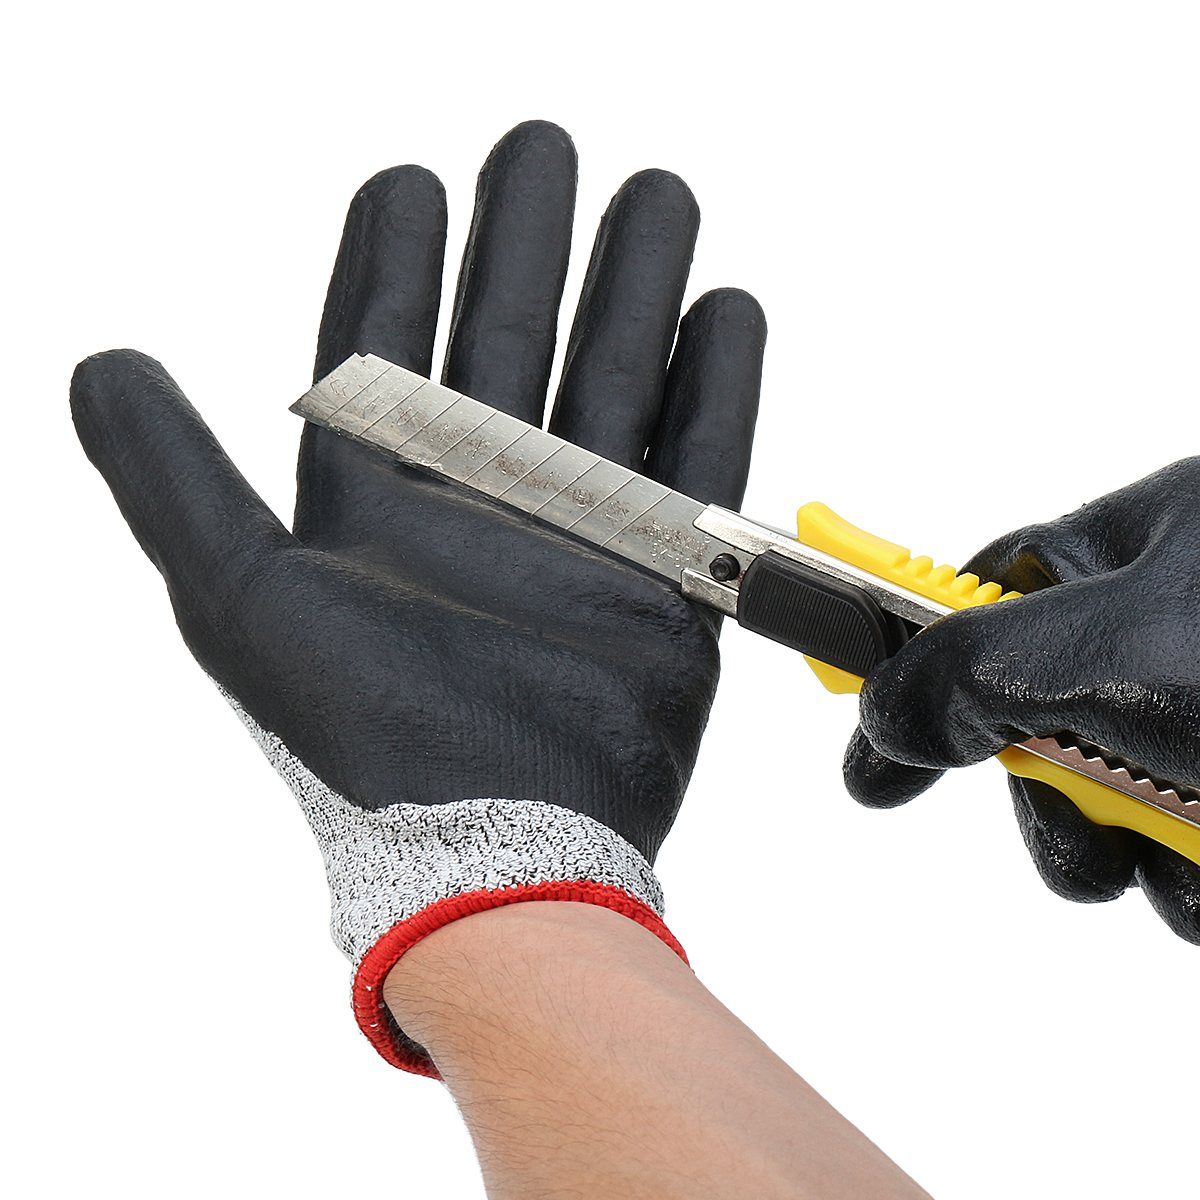 NEW Safurance Safety Cut Proof Stab Resistant Metal Mesh Butcher Gloves Workplace Safety Self Protection butcher